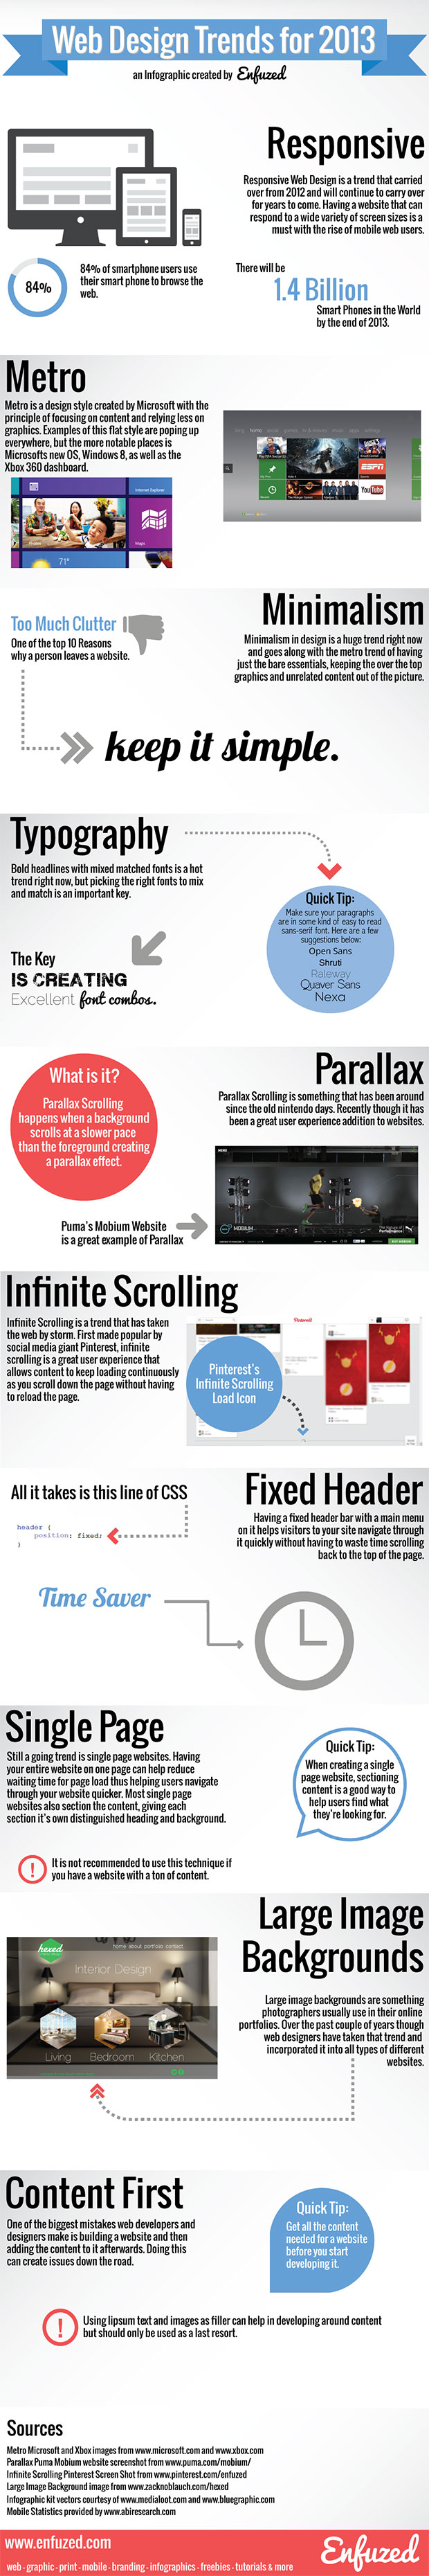 2013 Web Design Trends Infographic